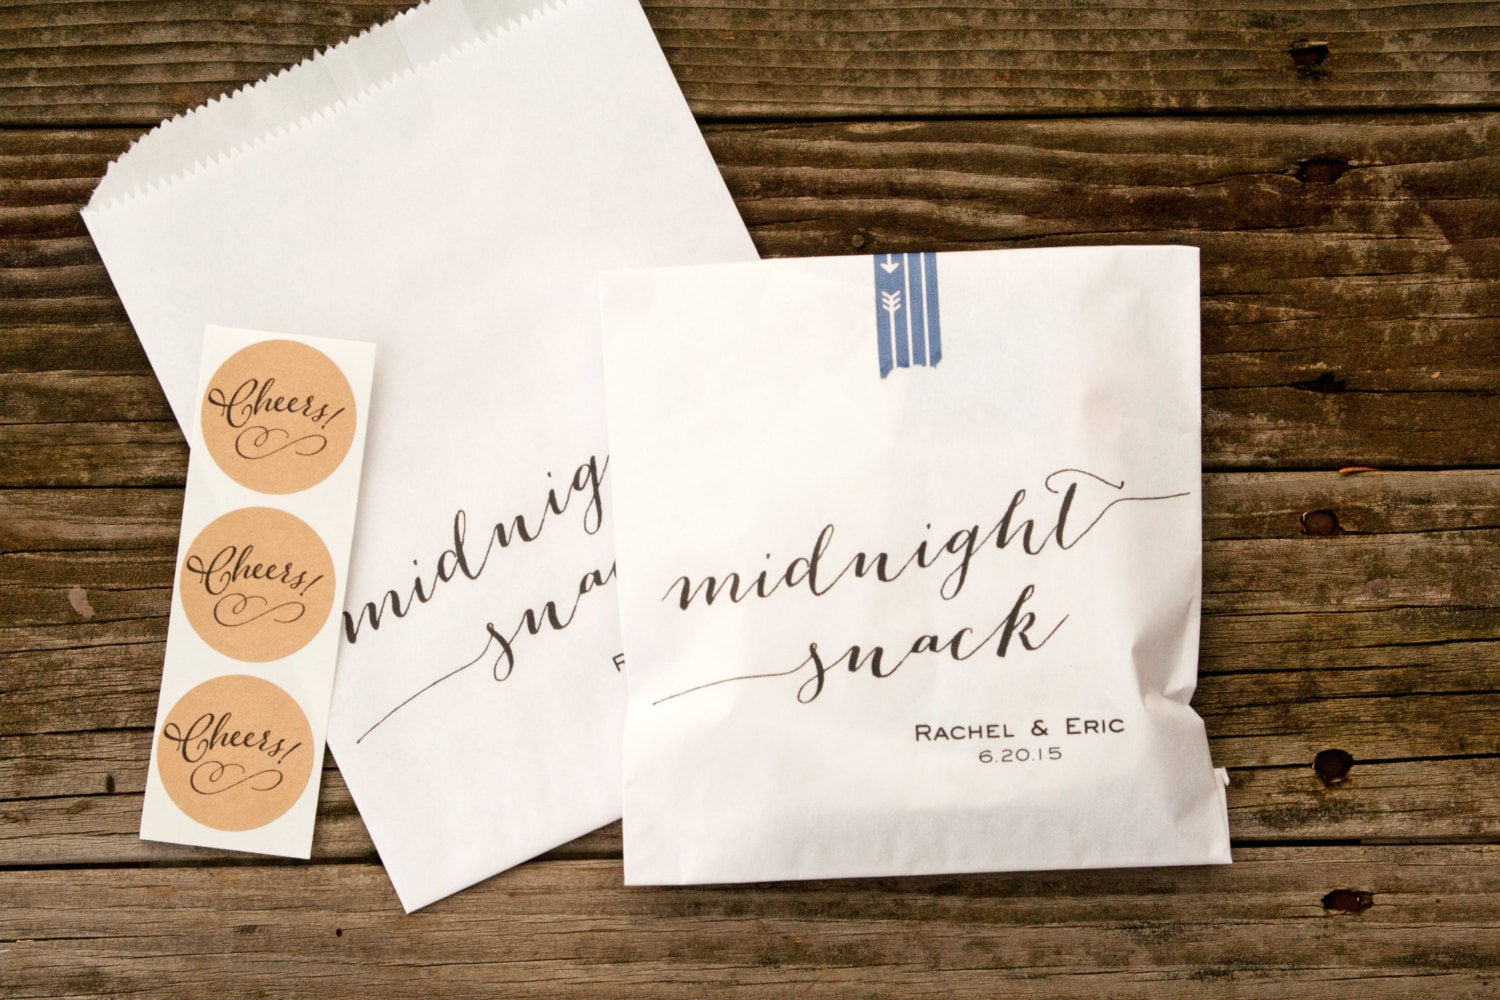 Wedding Gift Bag Snacks : Wedding Favor Bags Midnight snack script White Wax Lined